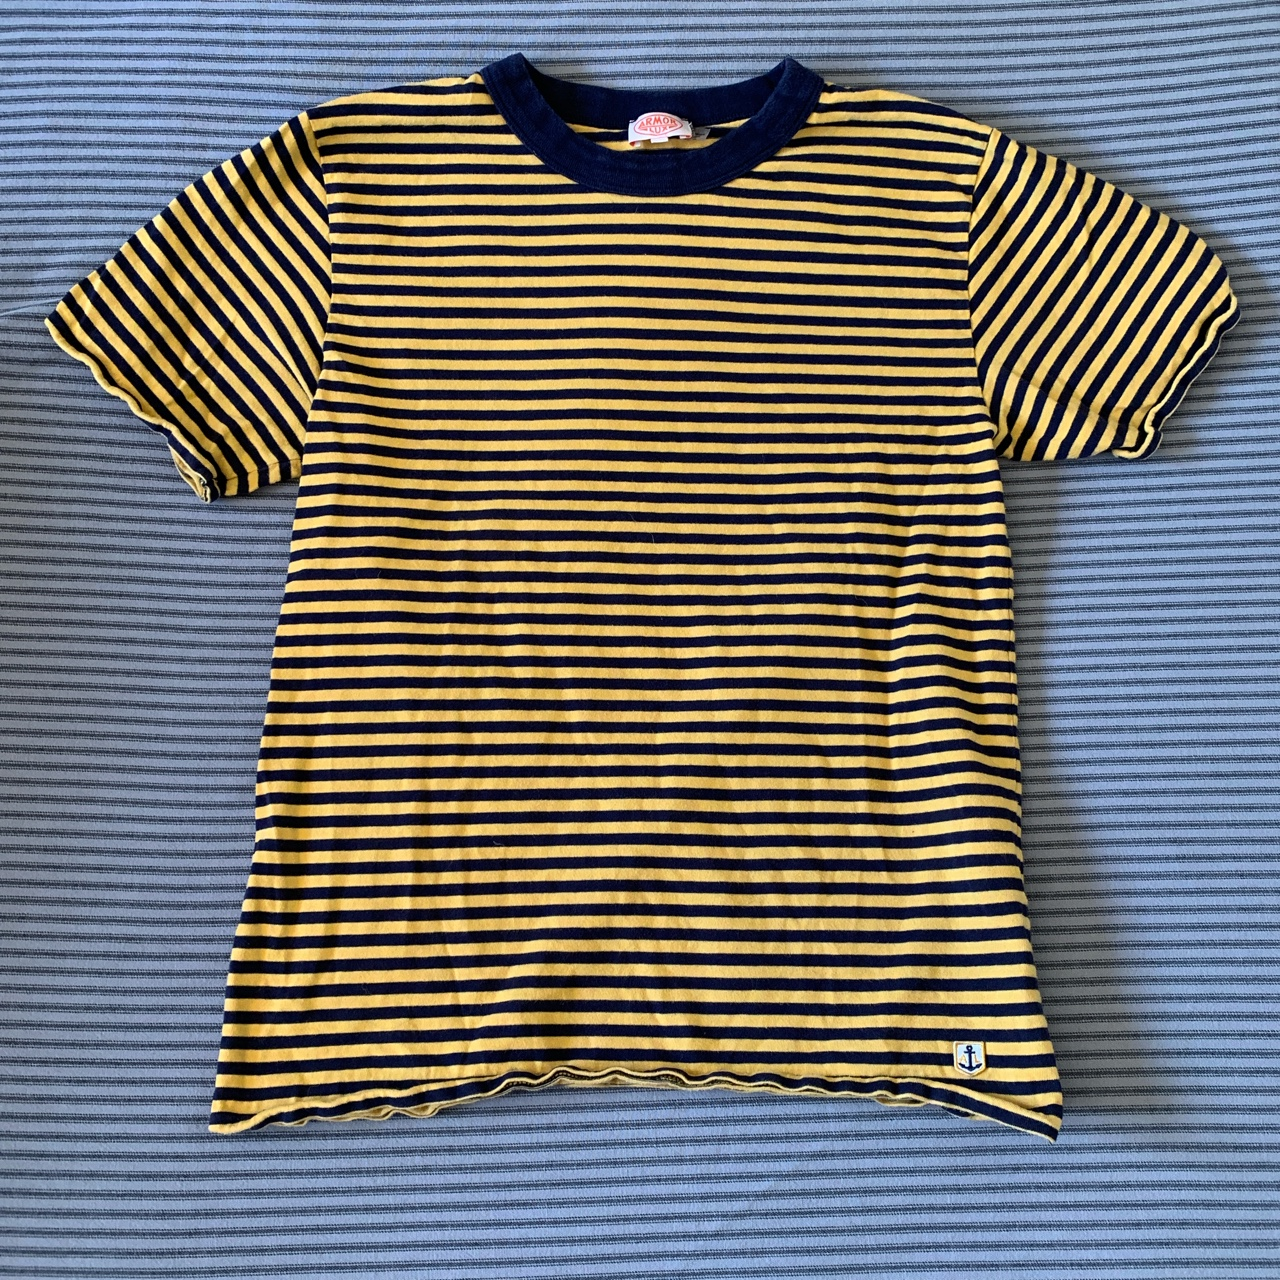 Product Image 1 - armor lucas - fits medium/small  #vintage